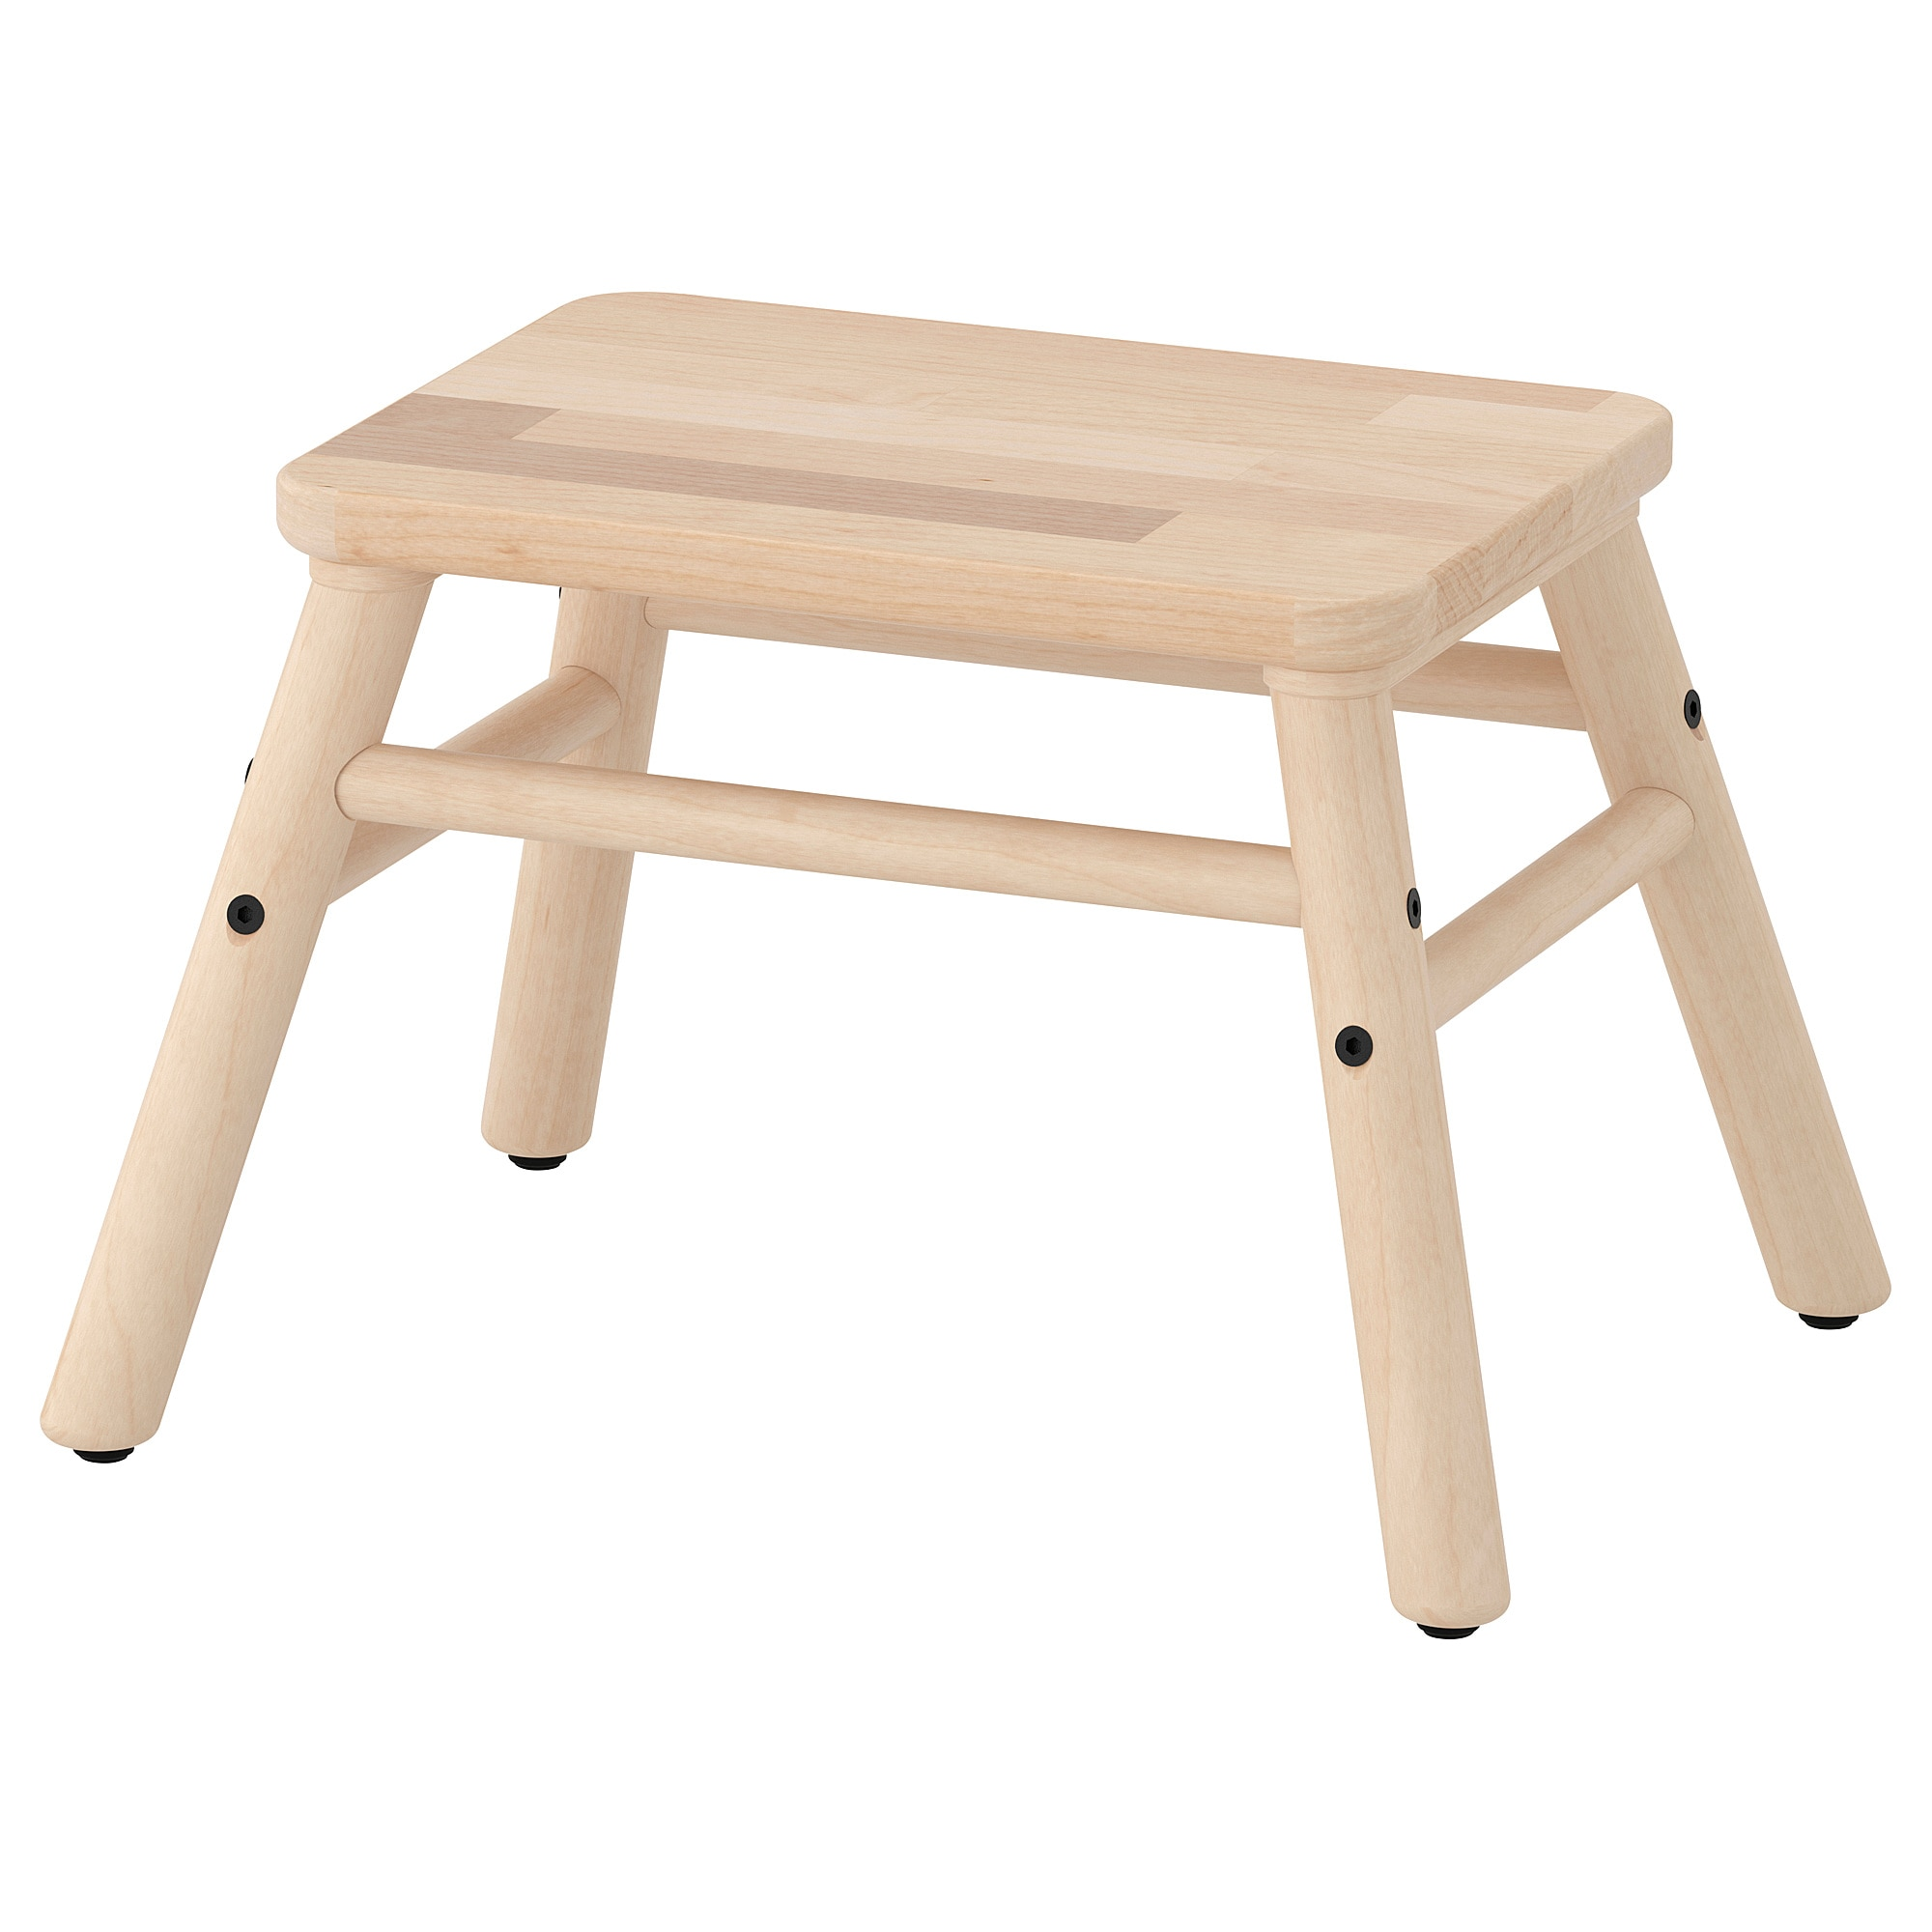 Incredible The Best Step Stools And Step Stool Diy Ideas Apartment Alphanode Cool Chair Designs And Ideas Alphanodeonline